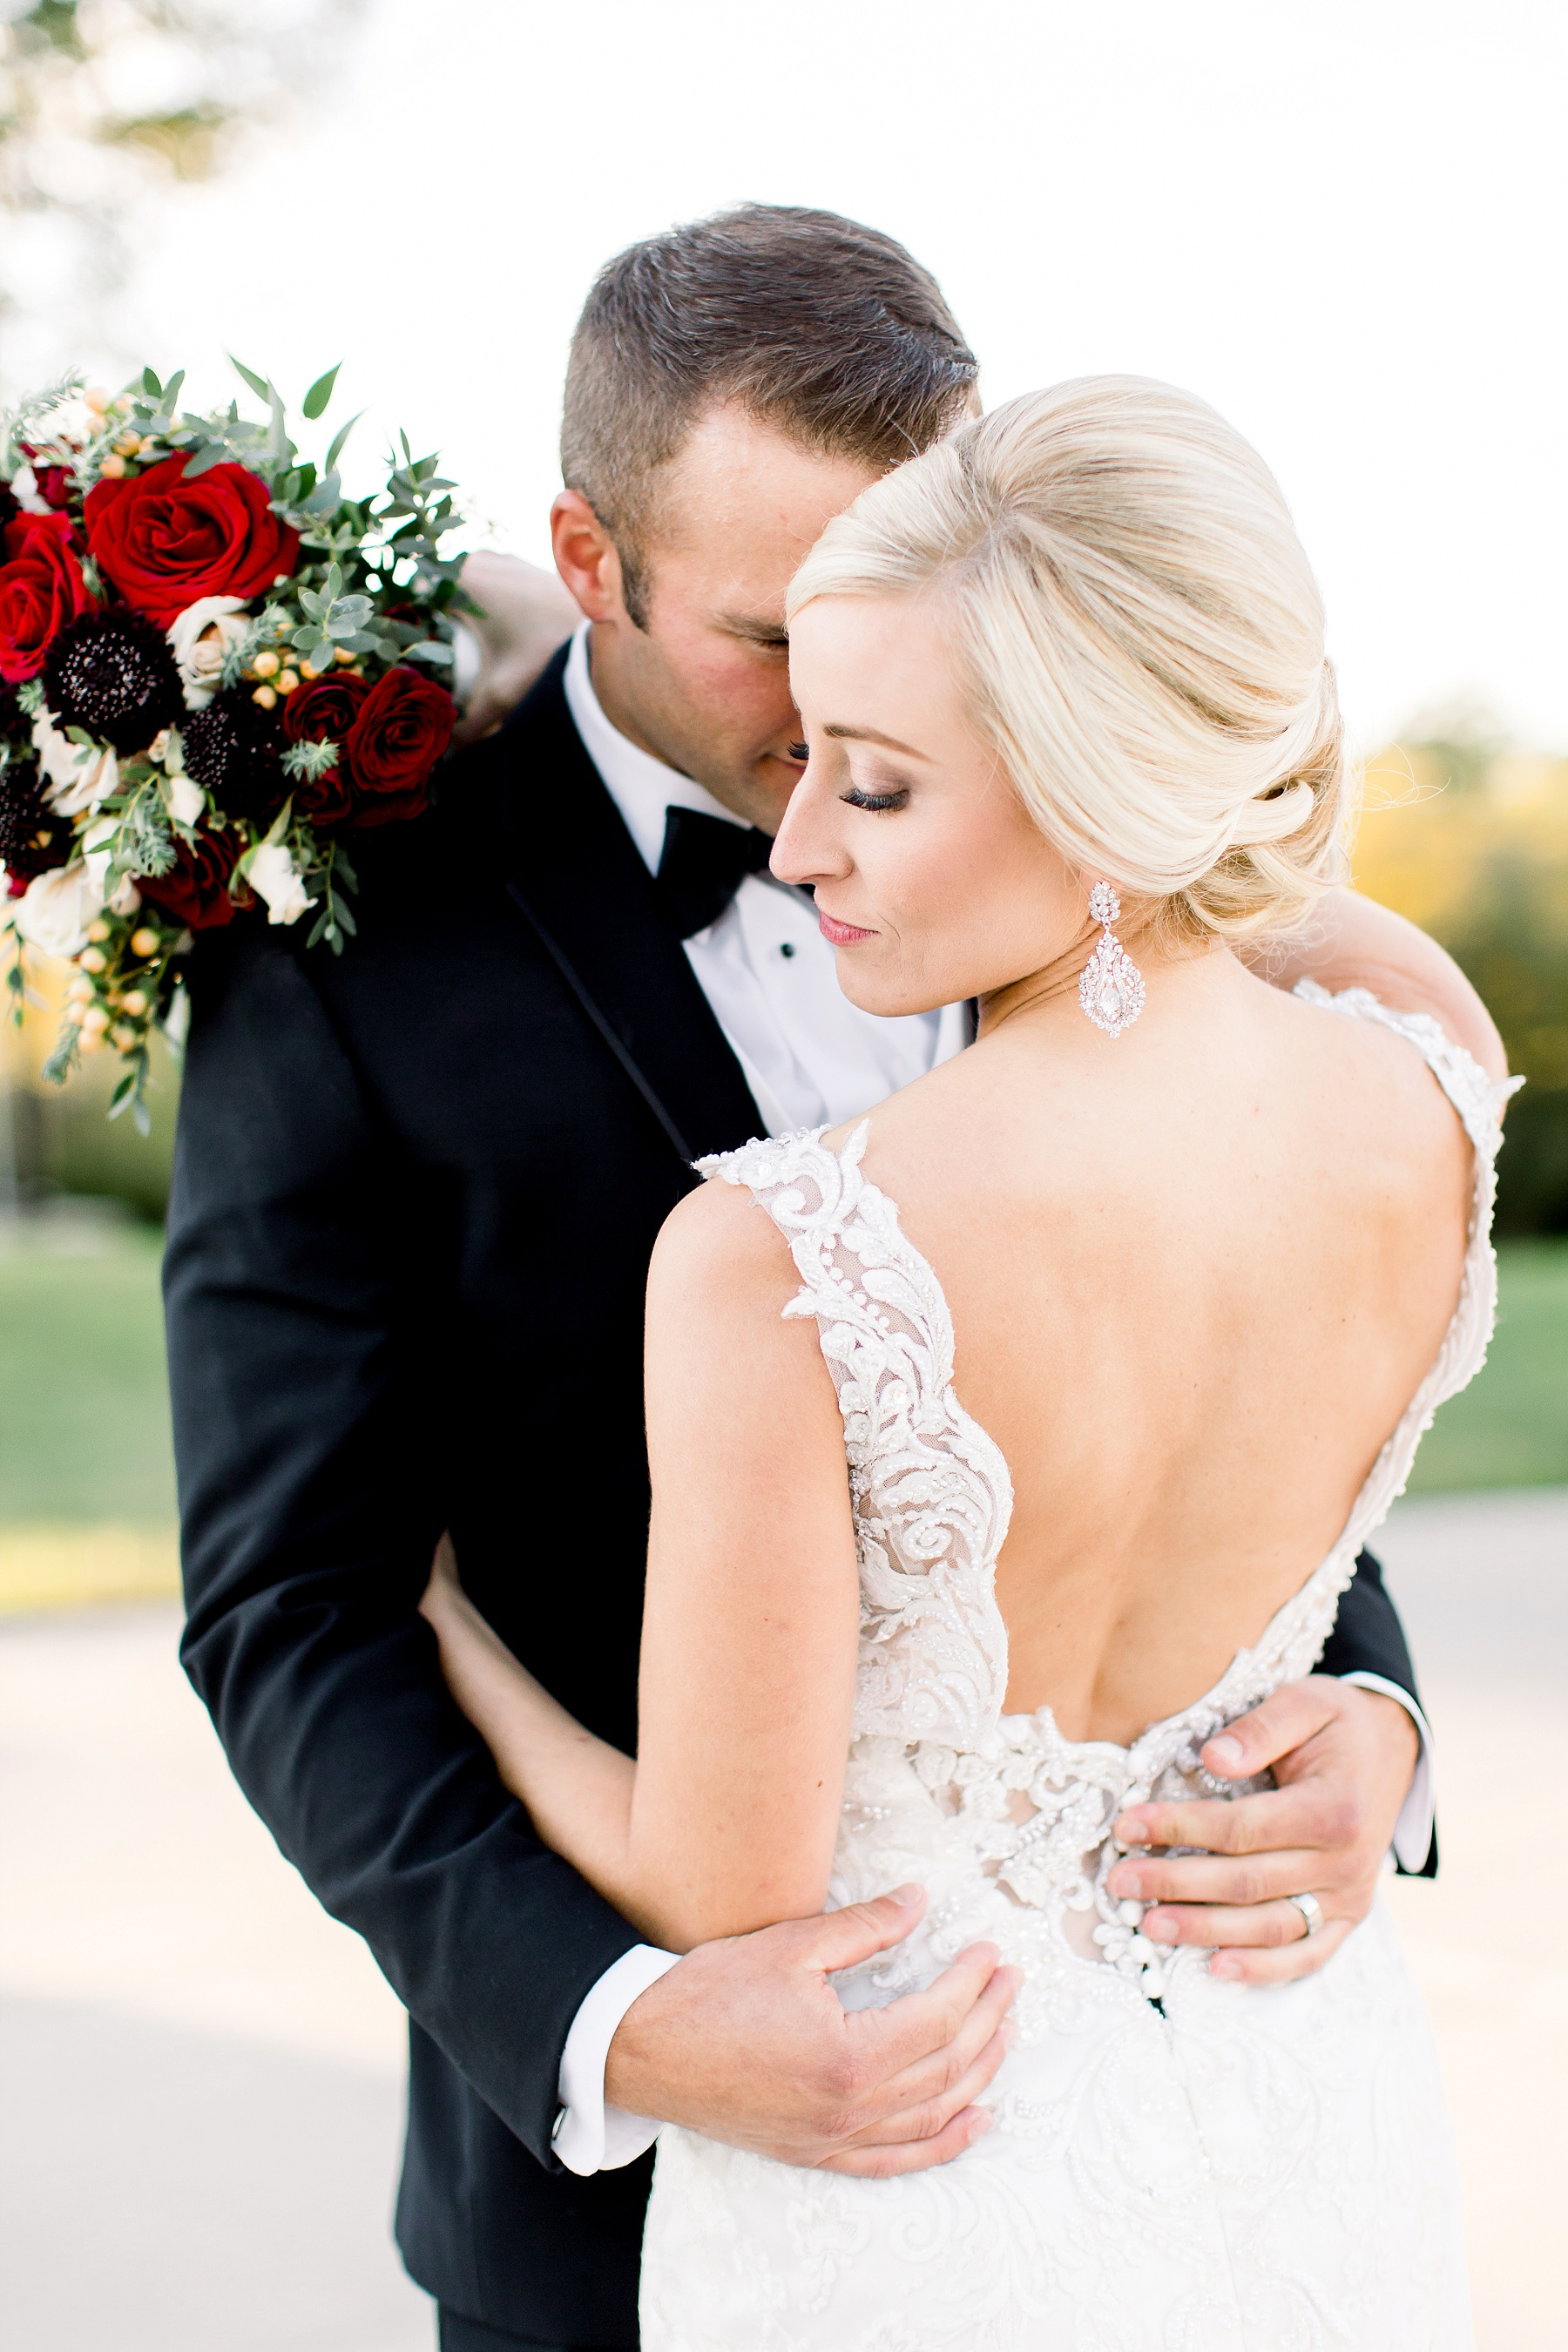 adventurous-authentic-wedding-engagement-photography-kansas-city-elizabeth-ladean-photo_5522.jpg